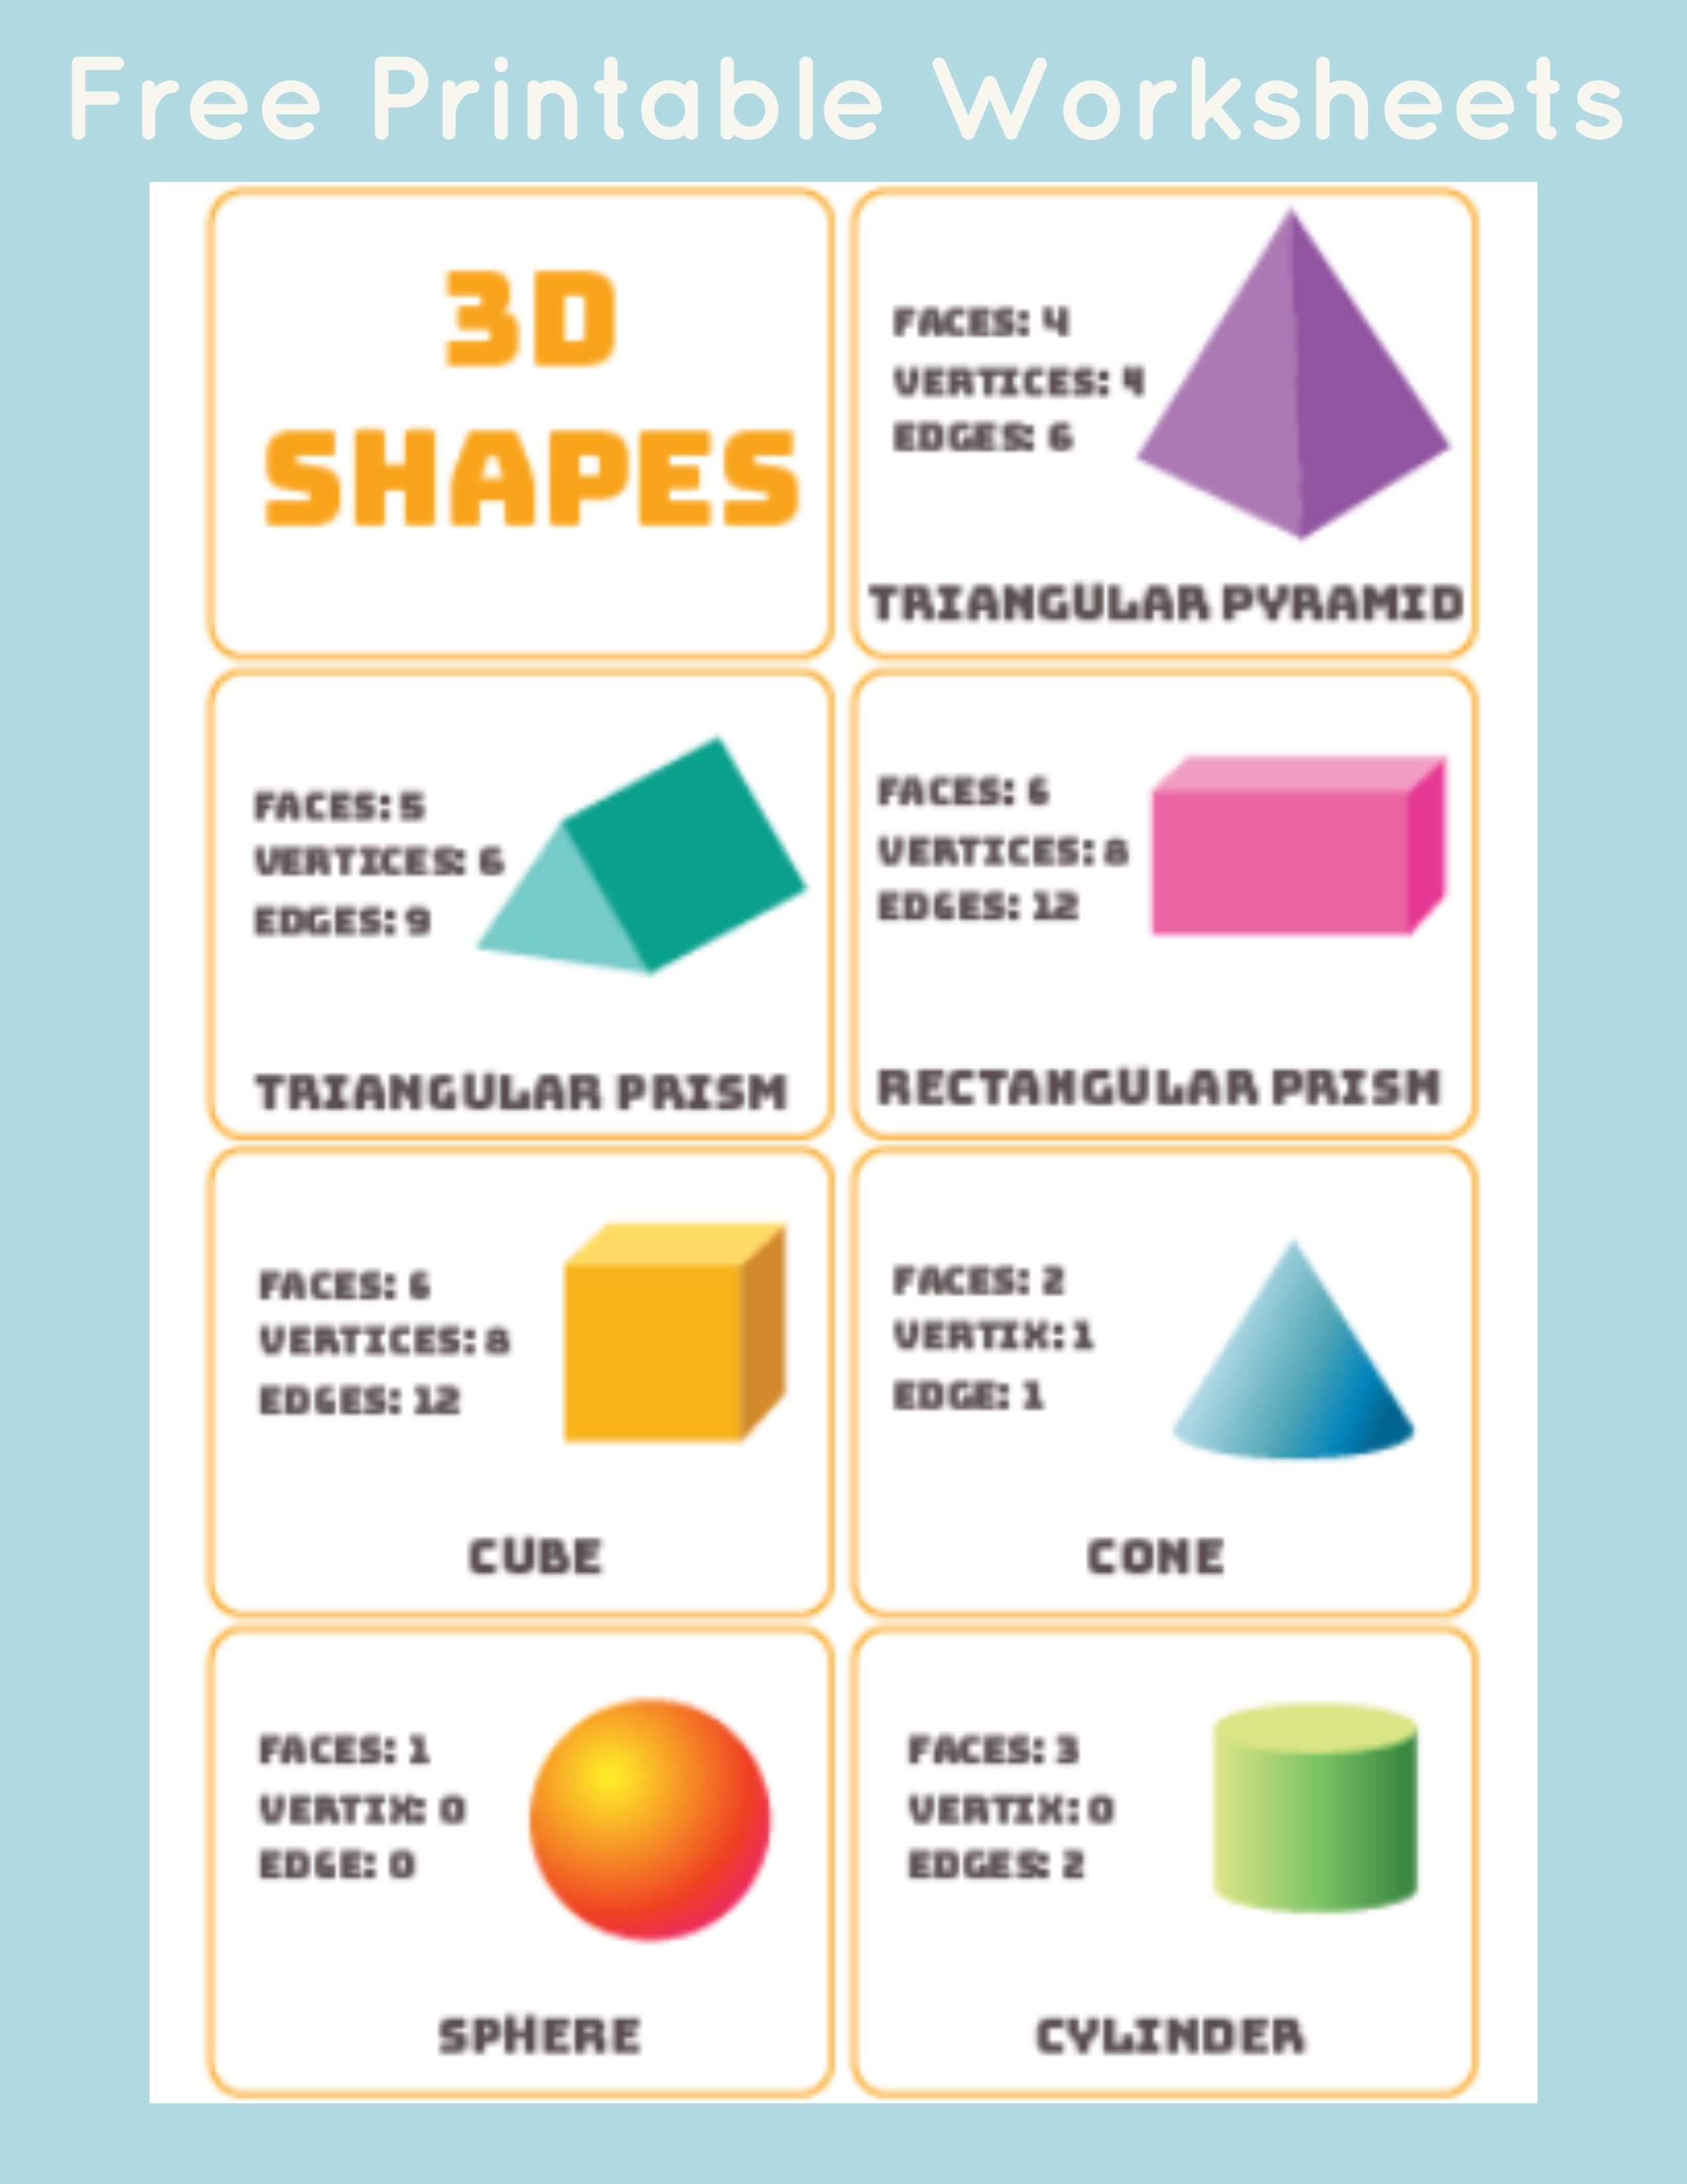 3d Shapes Word Mat Poster Primarylearning Org Shapes For Kids 3d Shapes Printable Shapes